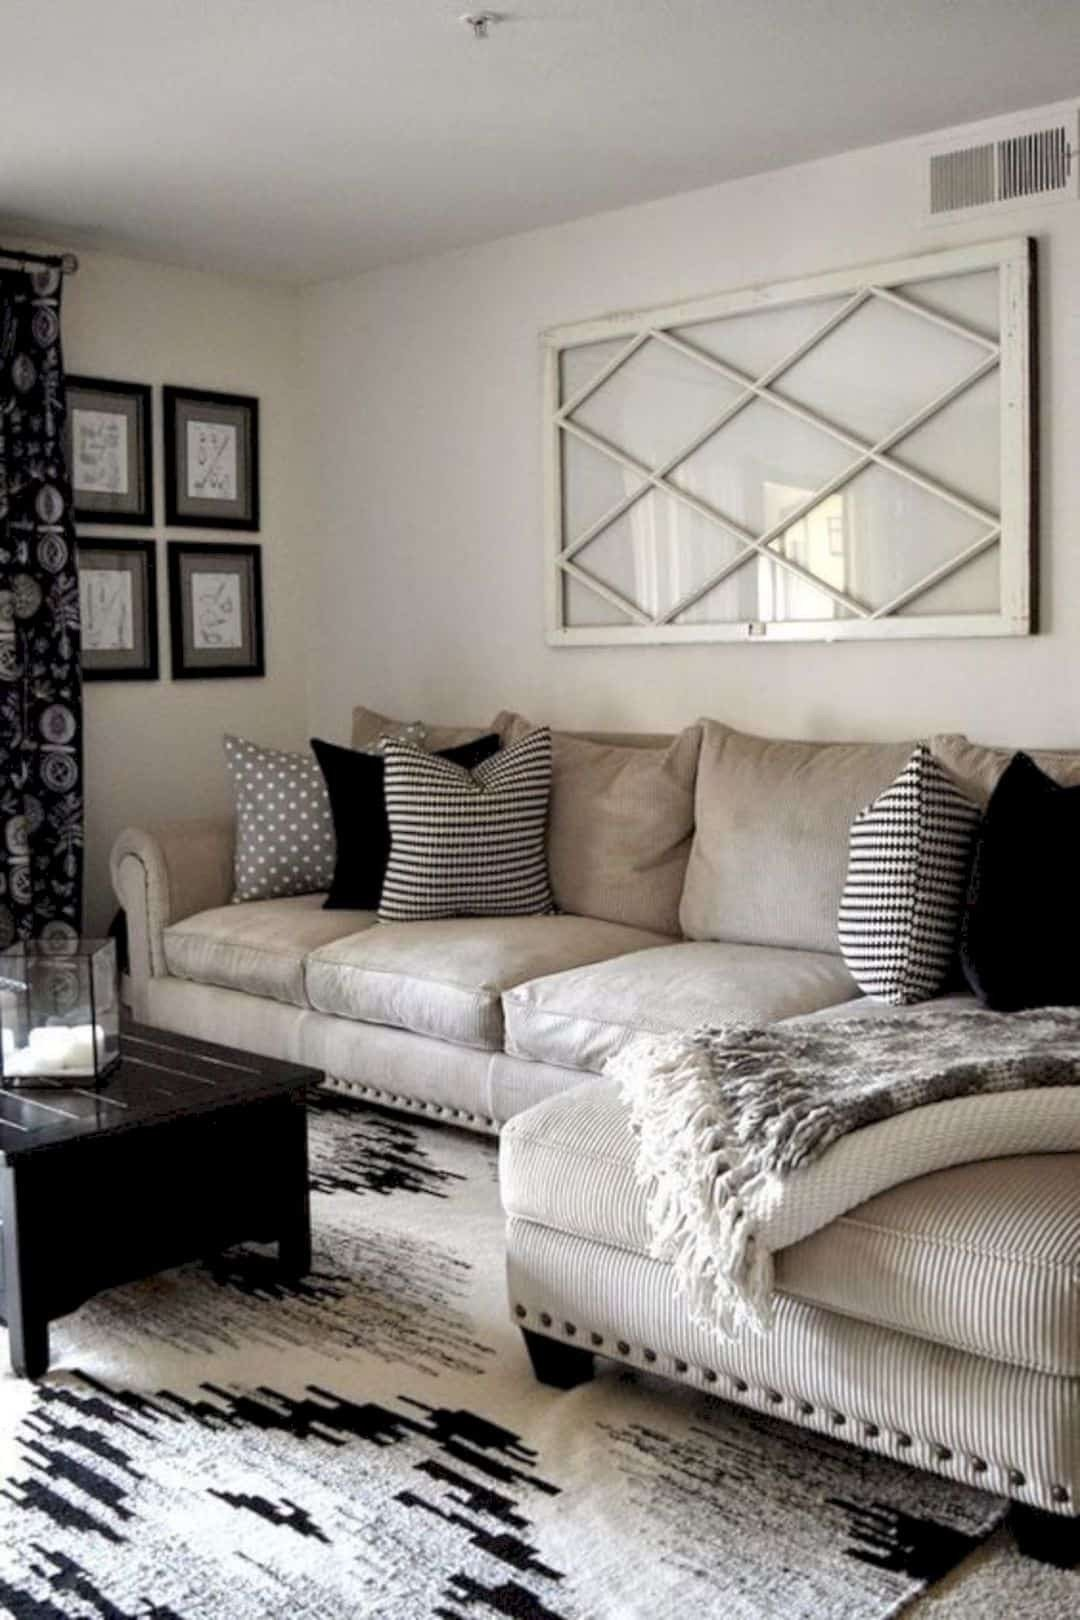 Living Room Wall Decor Ideas Awesome 16 Magnificent Living Room Walls Decorating Ideas